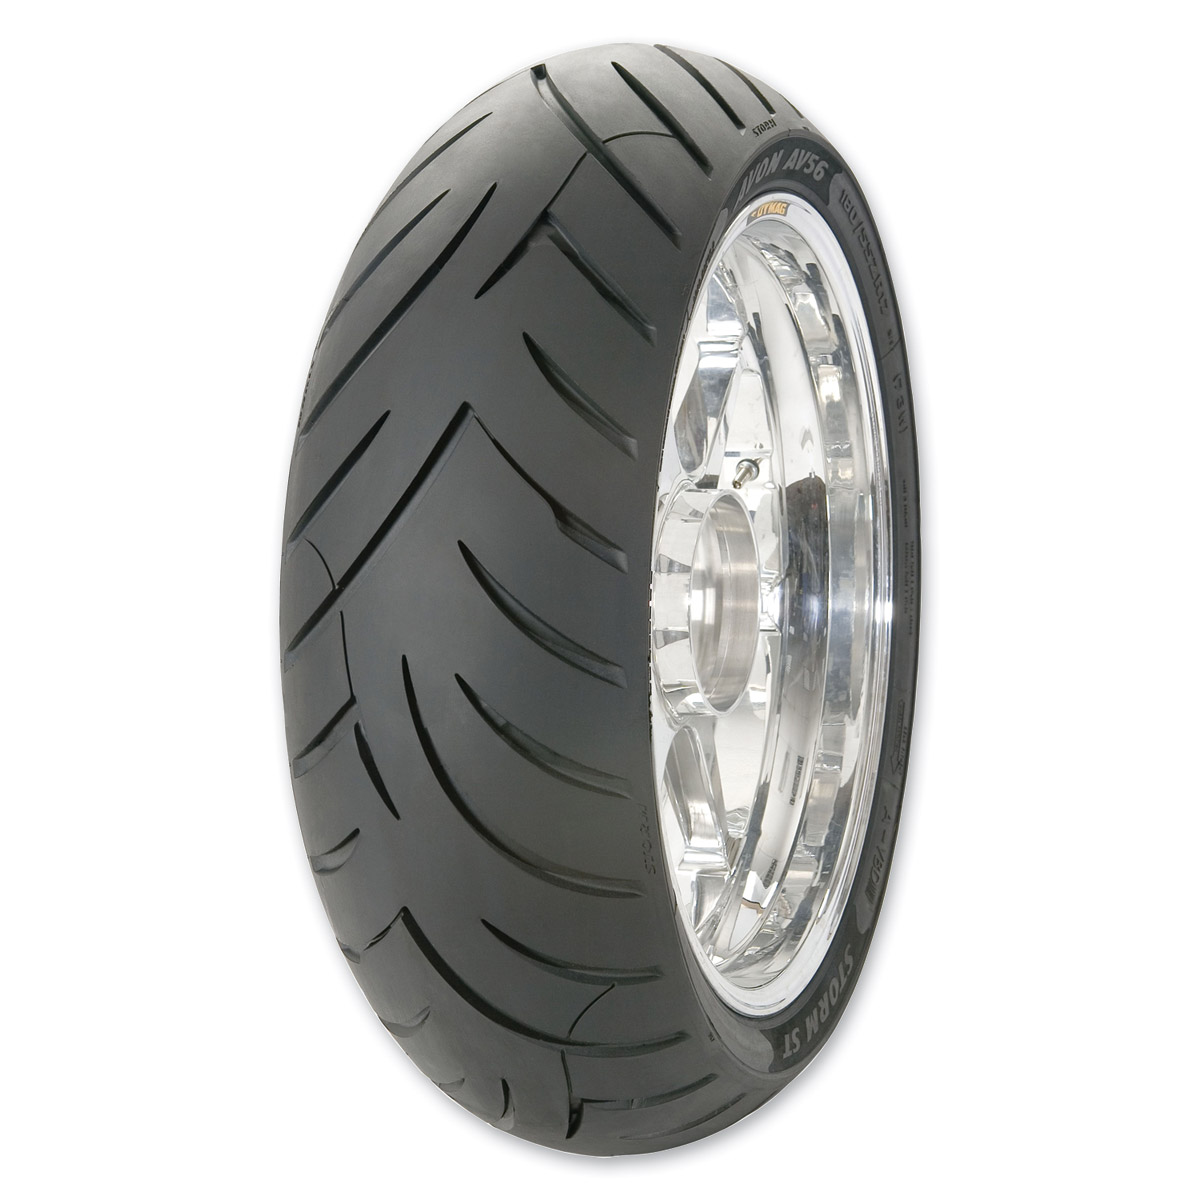 Avon Storm 2 Ultra Sport 160/60R17 Rear Tire